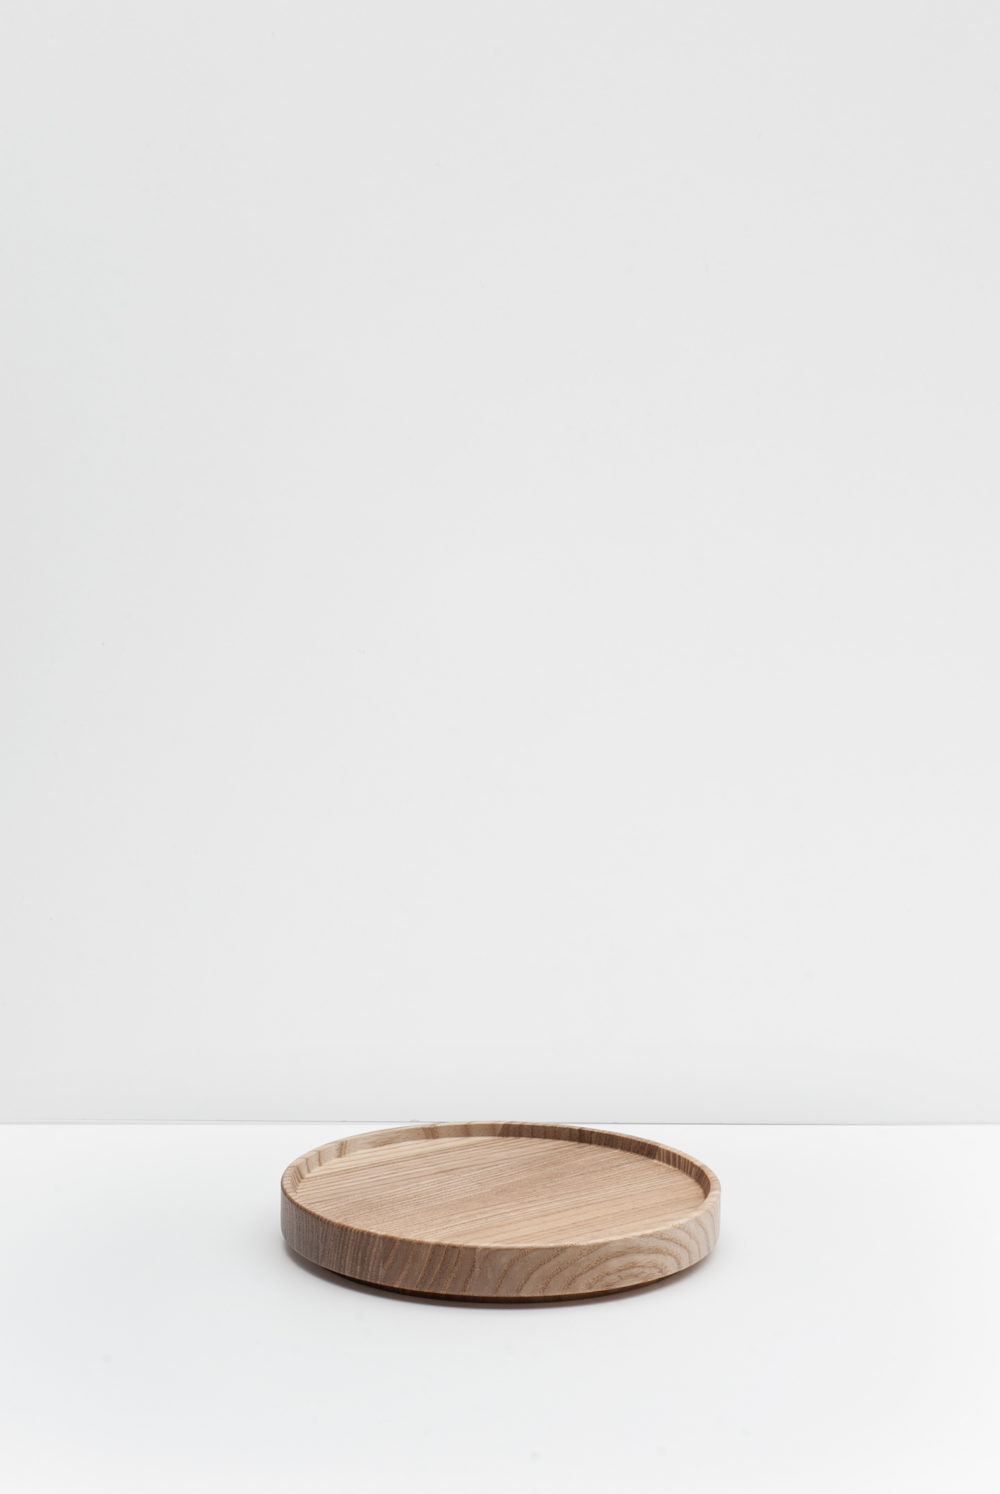 Hasami Porcelain wood tray in ash